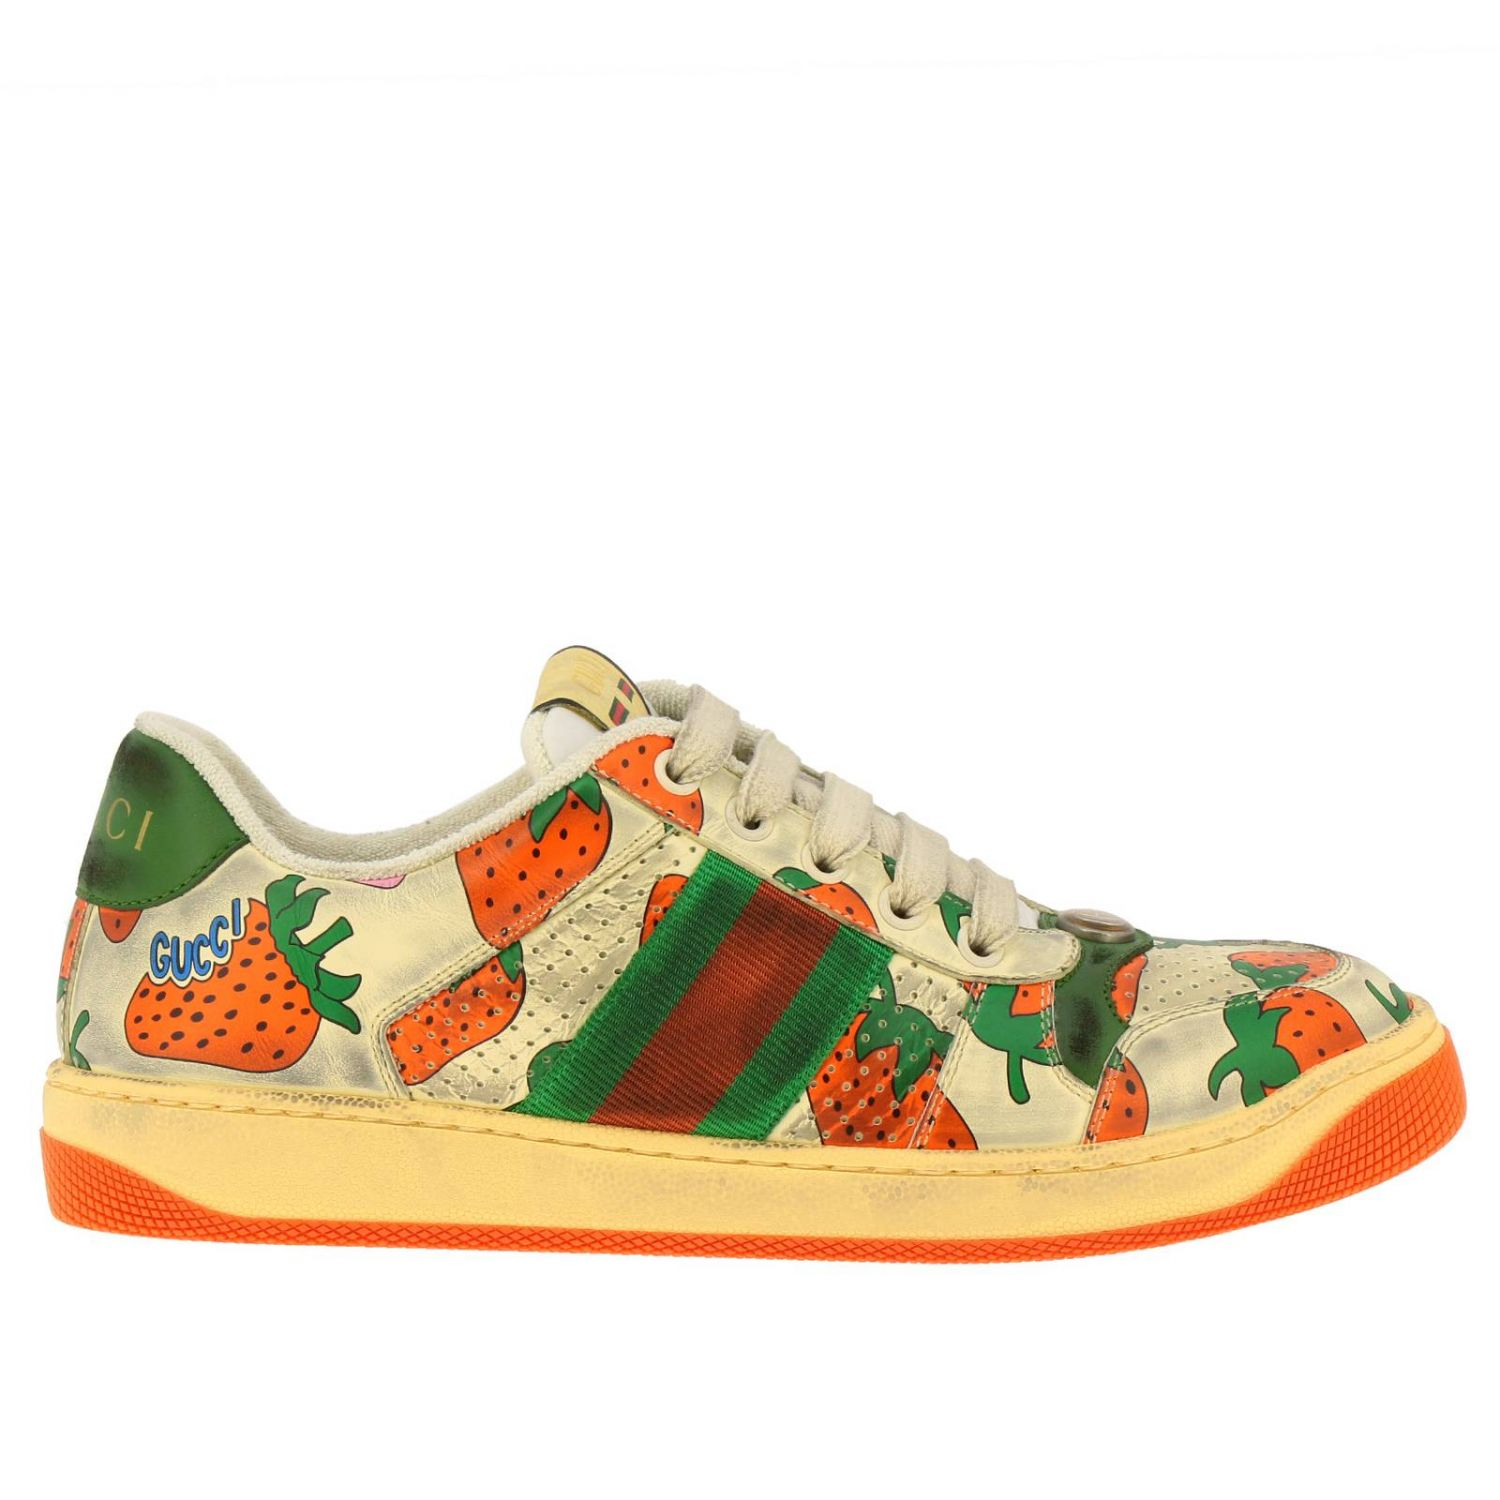 Sneakers Virtus Gucci in pelle vintage con stampa fragole all over bianco 1